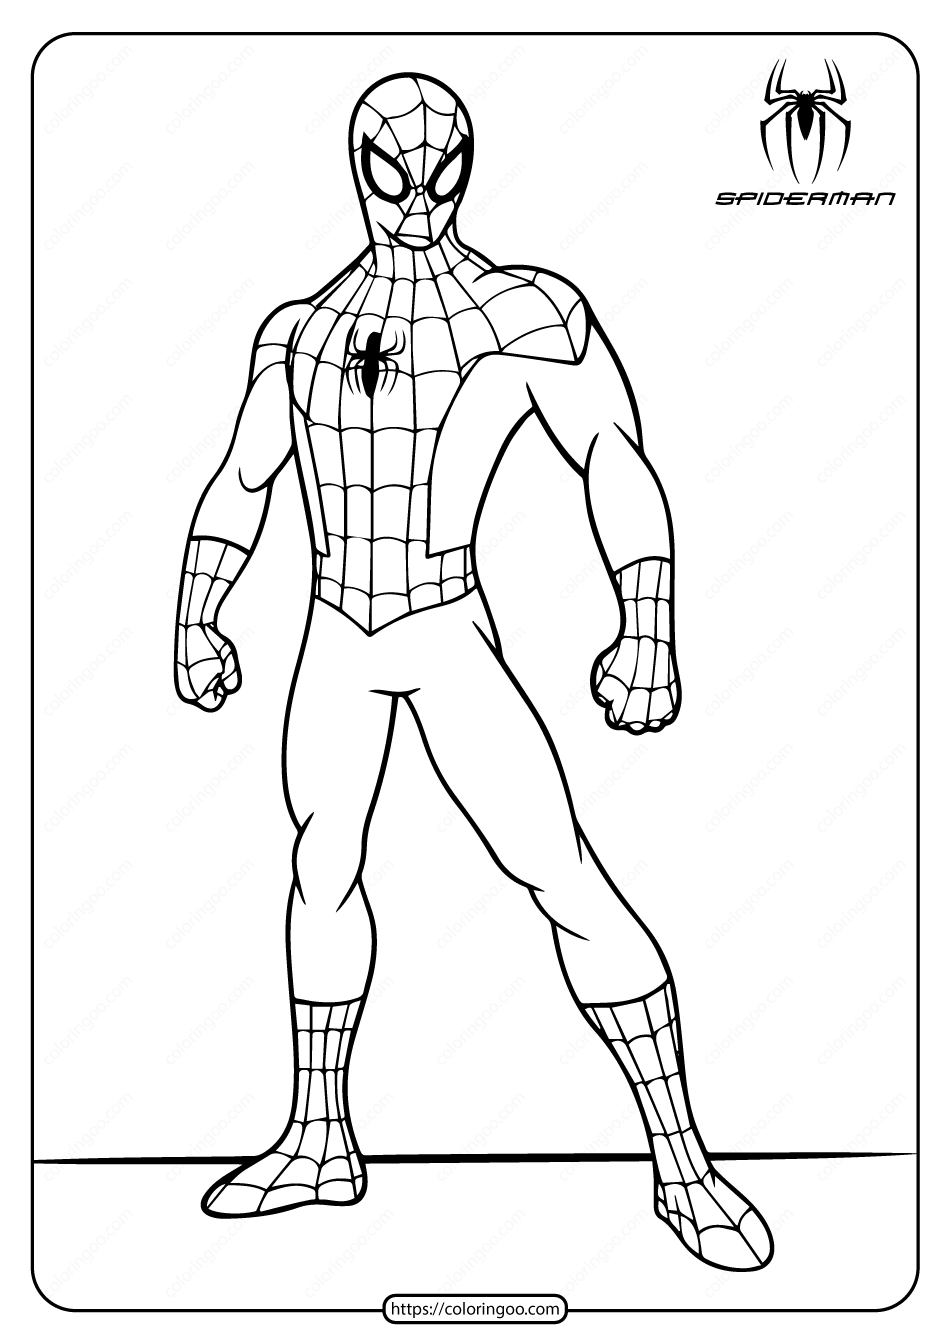 coloring spiderman color waiting spider man coloring page free coloring pages online spiderman coloring color